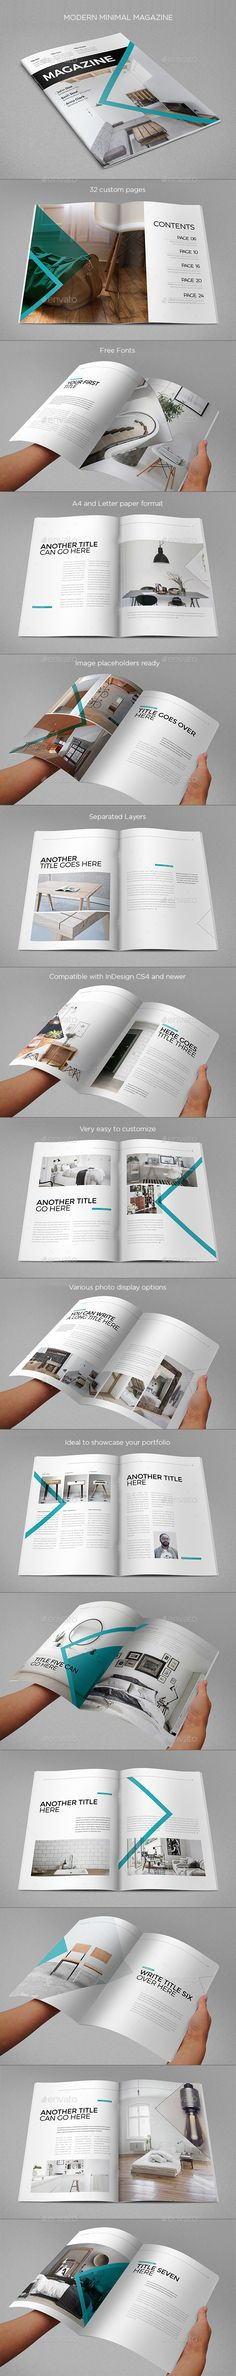 30 Pages Magazine Template InDesign INDD | like | Pinterest ...